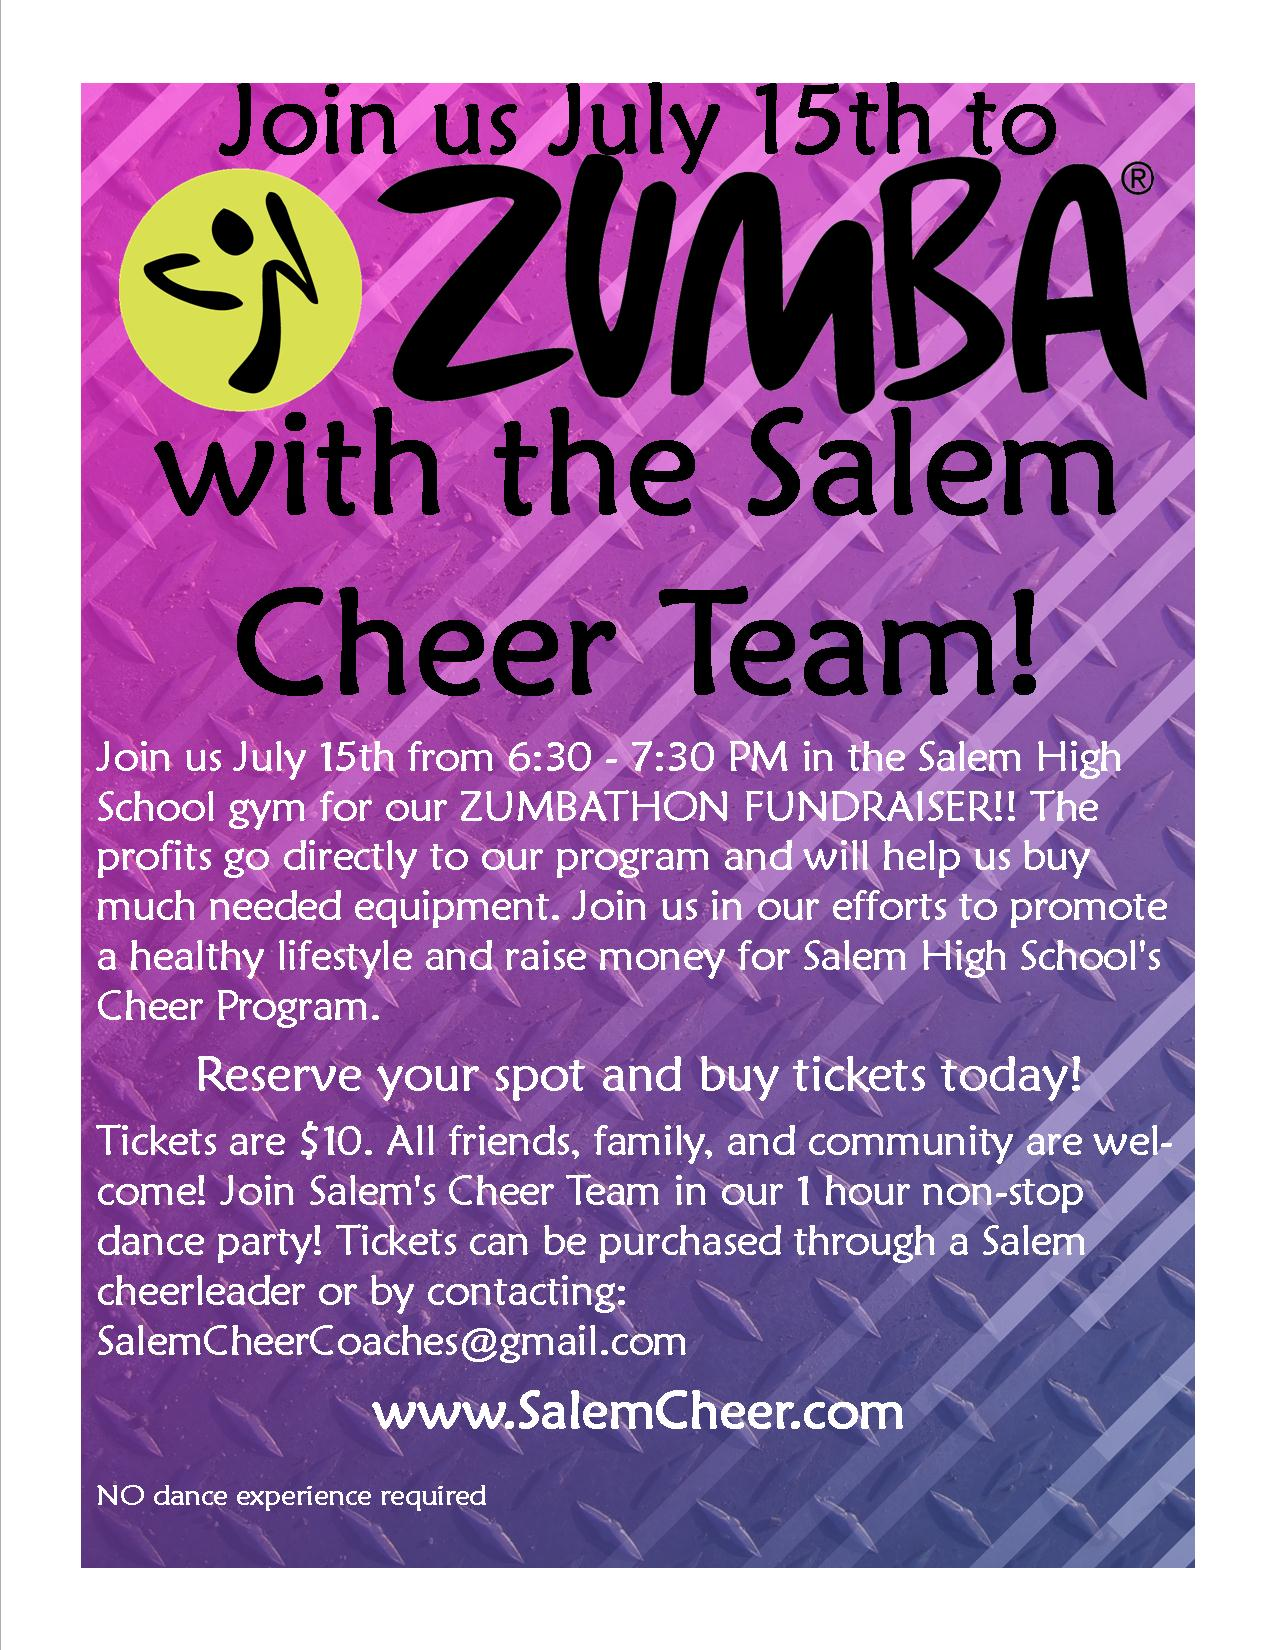 ... zumba flyers templates source abuse report zumba flyers templates Zumba Flyers Templates